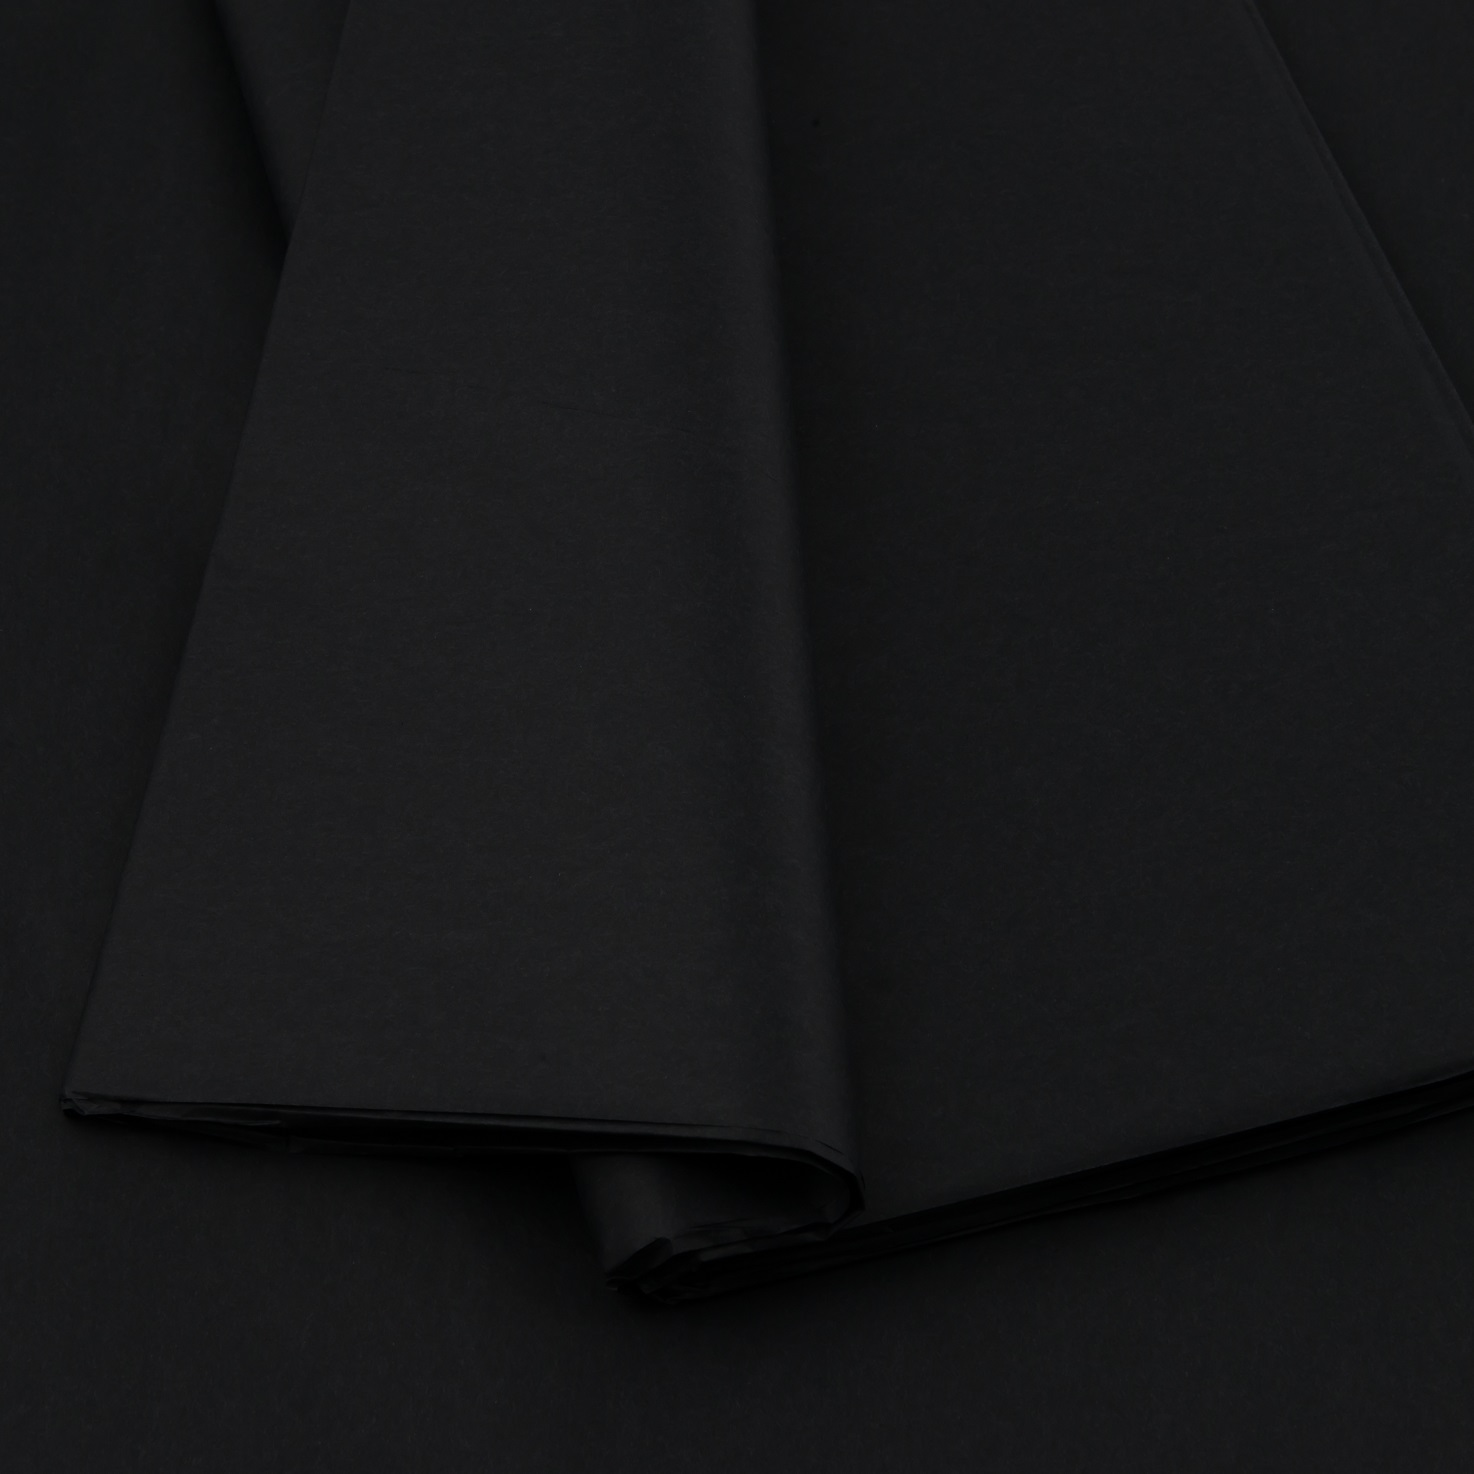 Plain tissue paper black